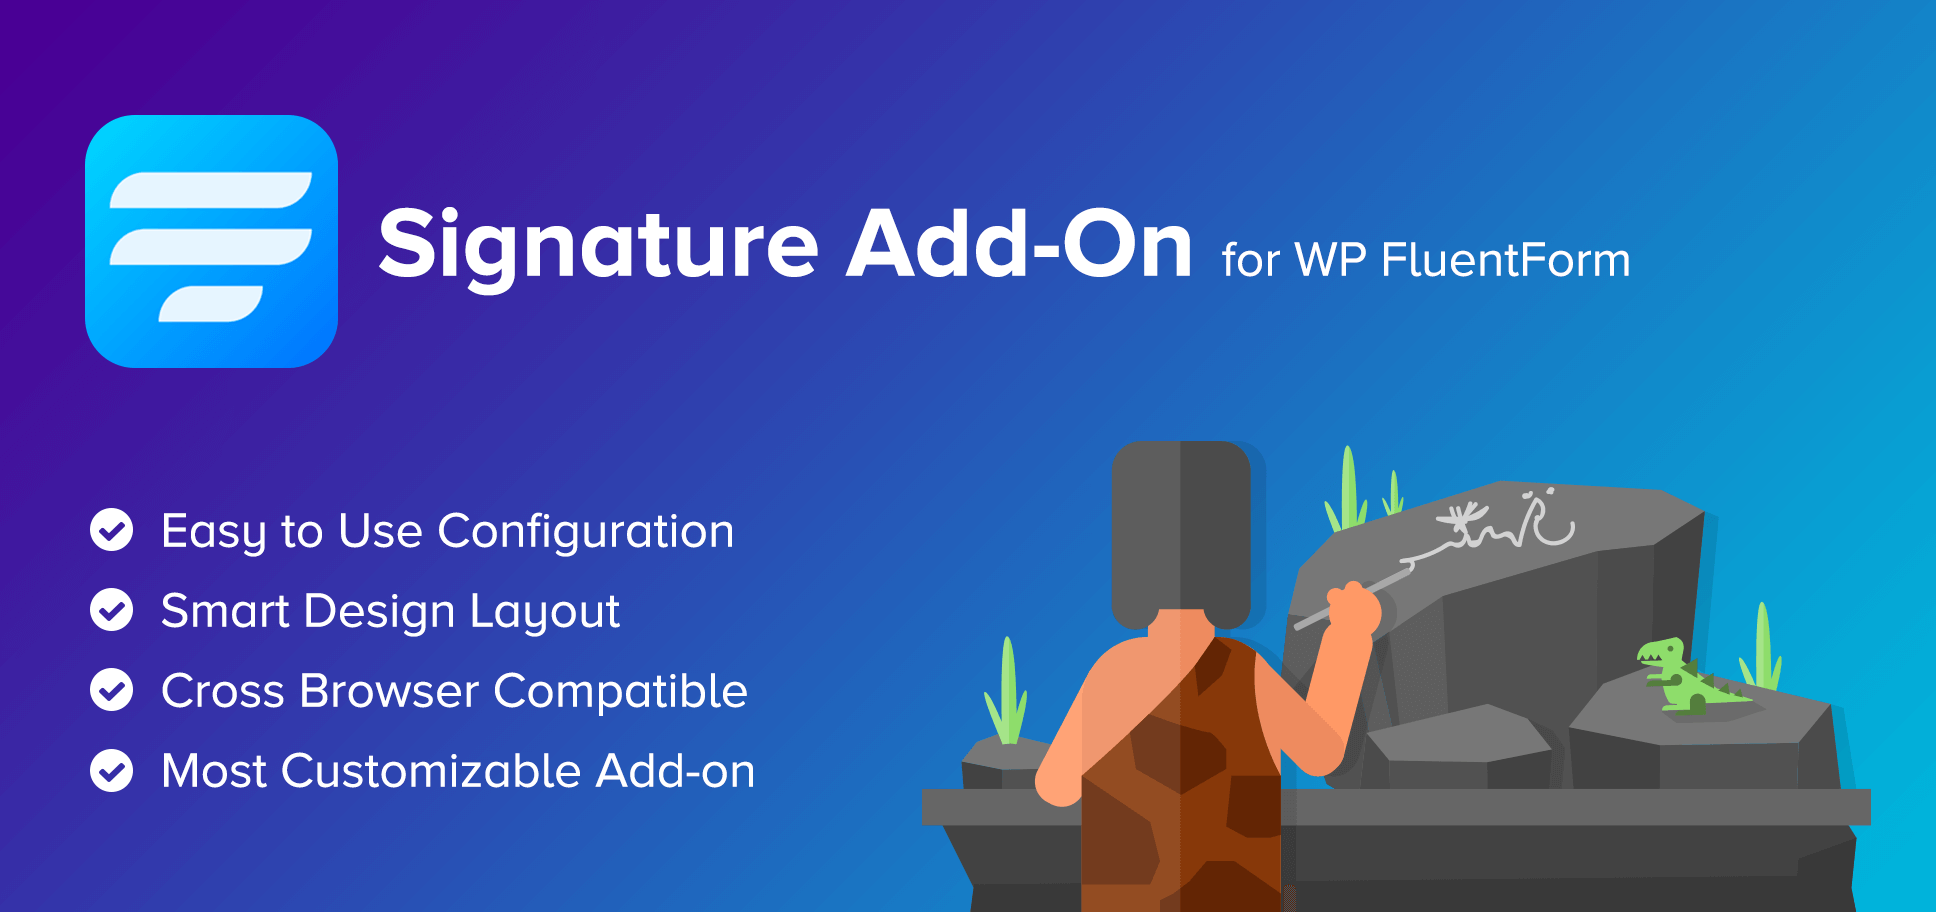 Signature Add-On for WP Fluent Forms